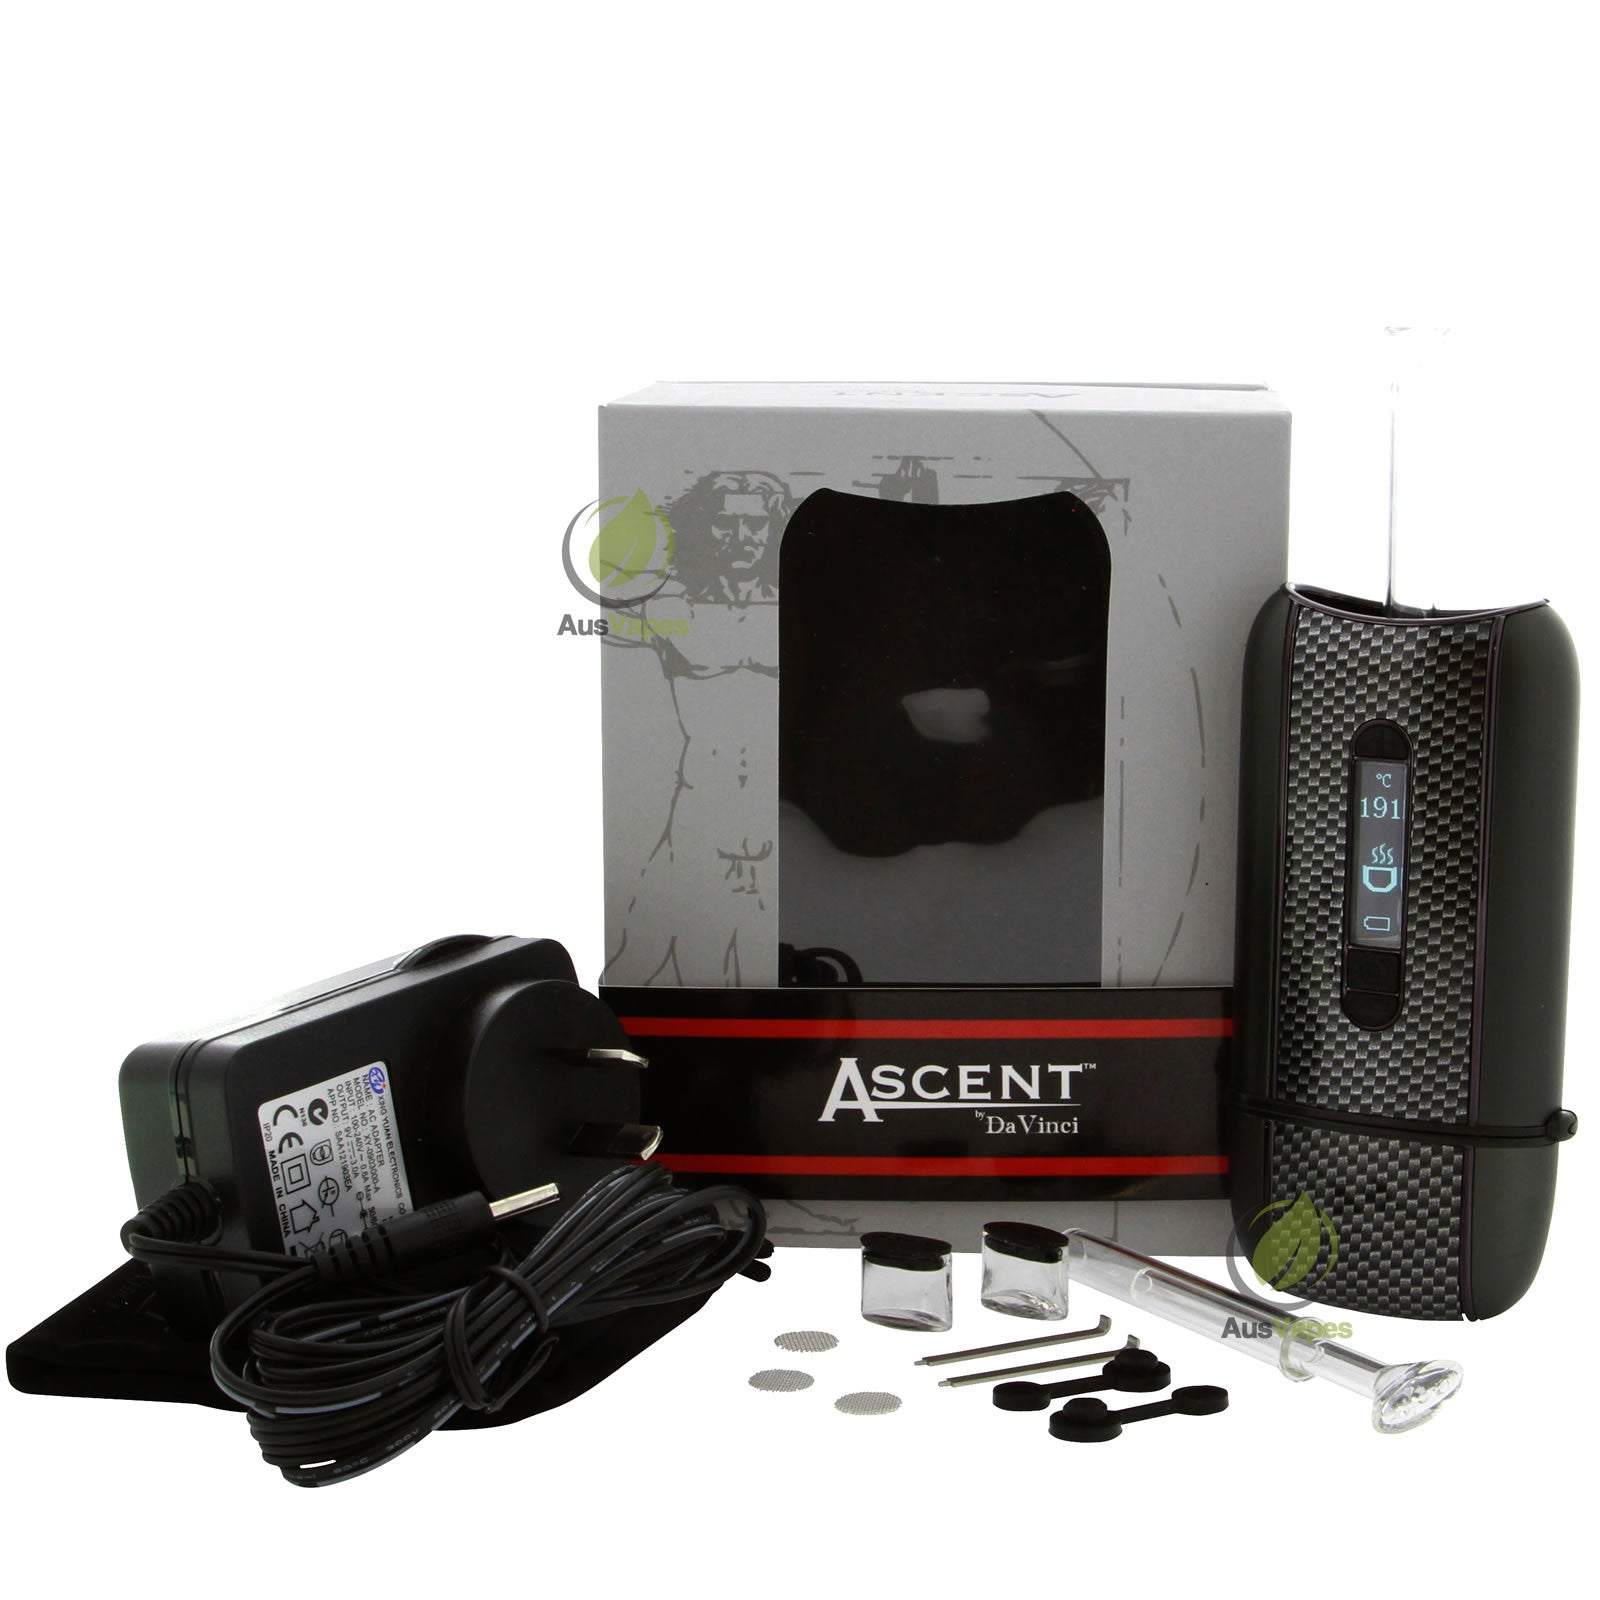 davinci ascent vaporizer full kit